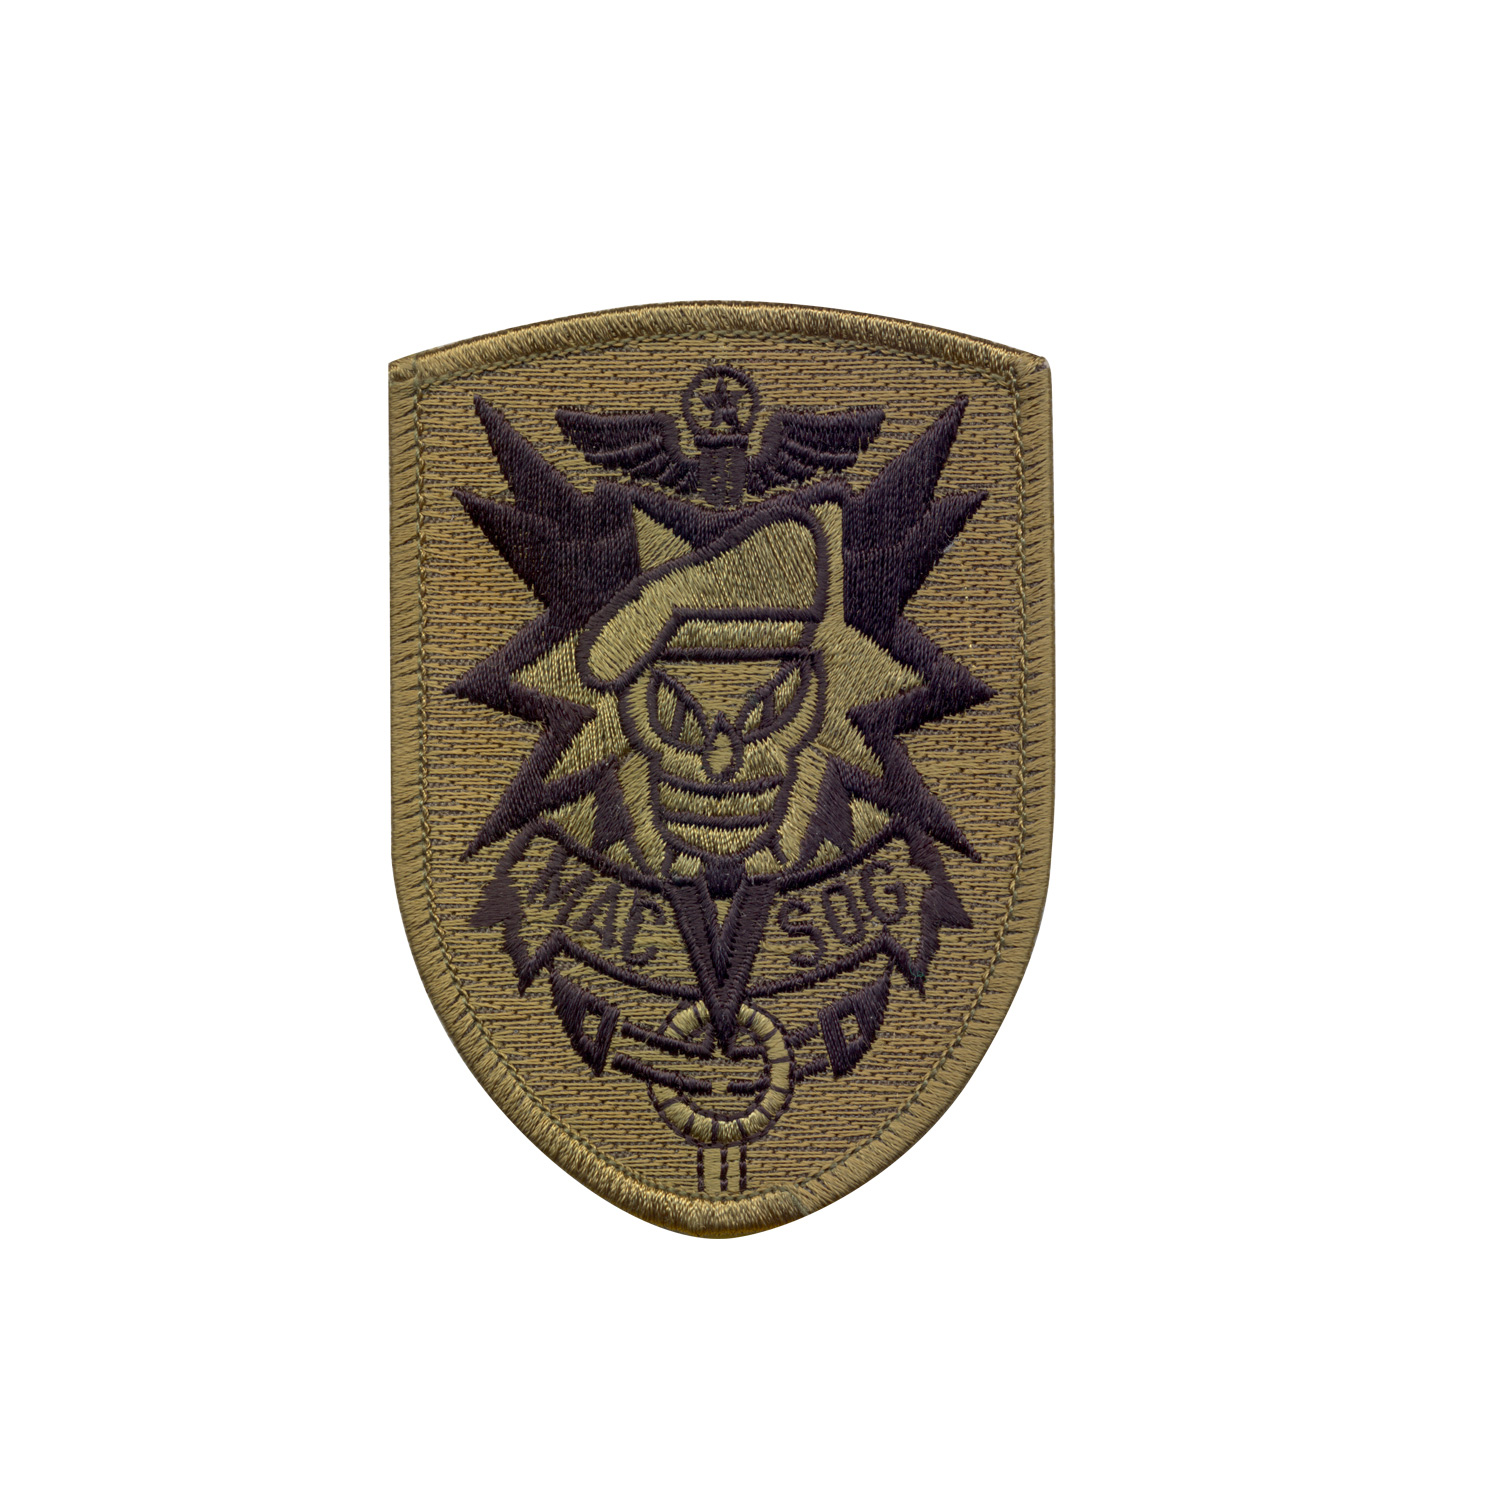 rothco subdued mac viet sog patch free shipping over 49 optics planet